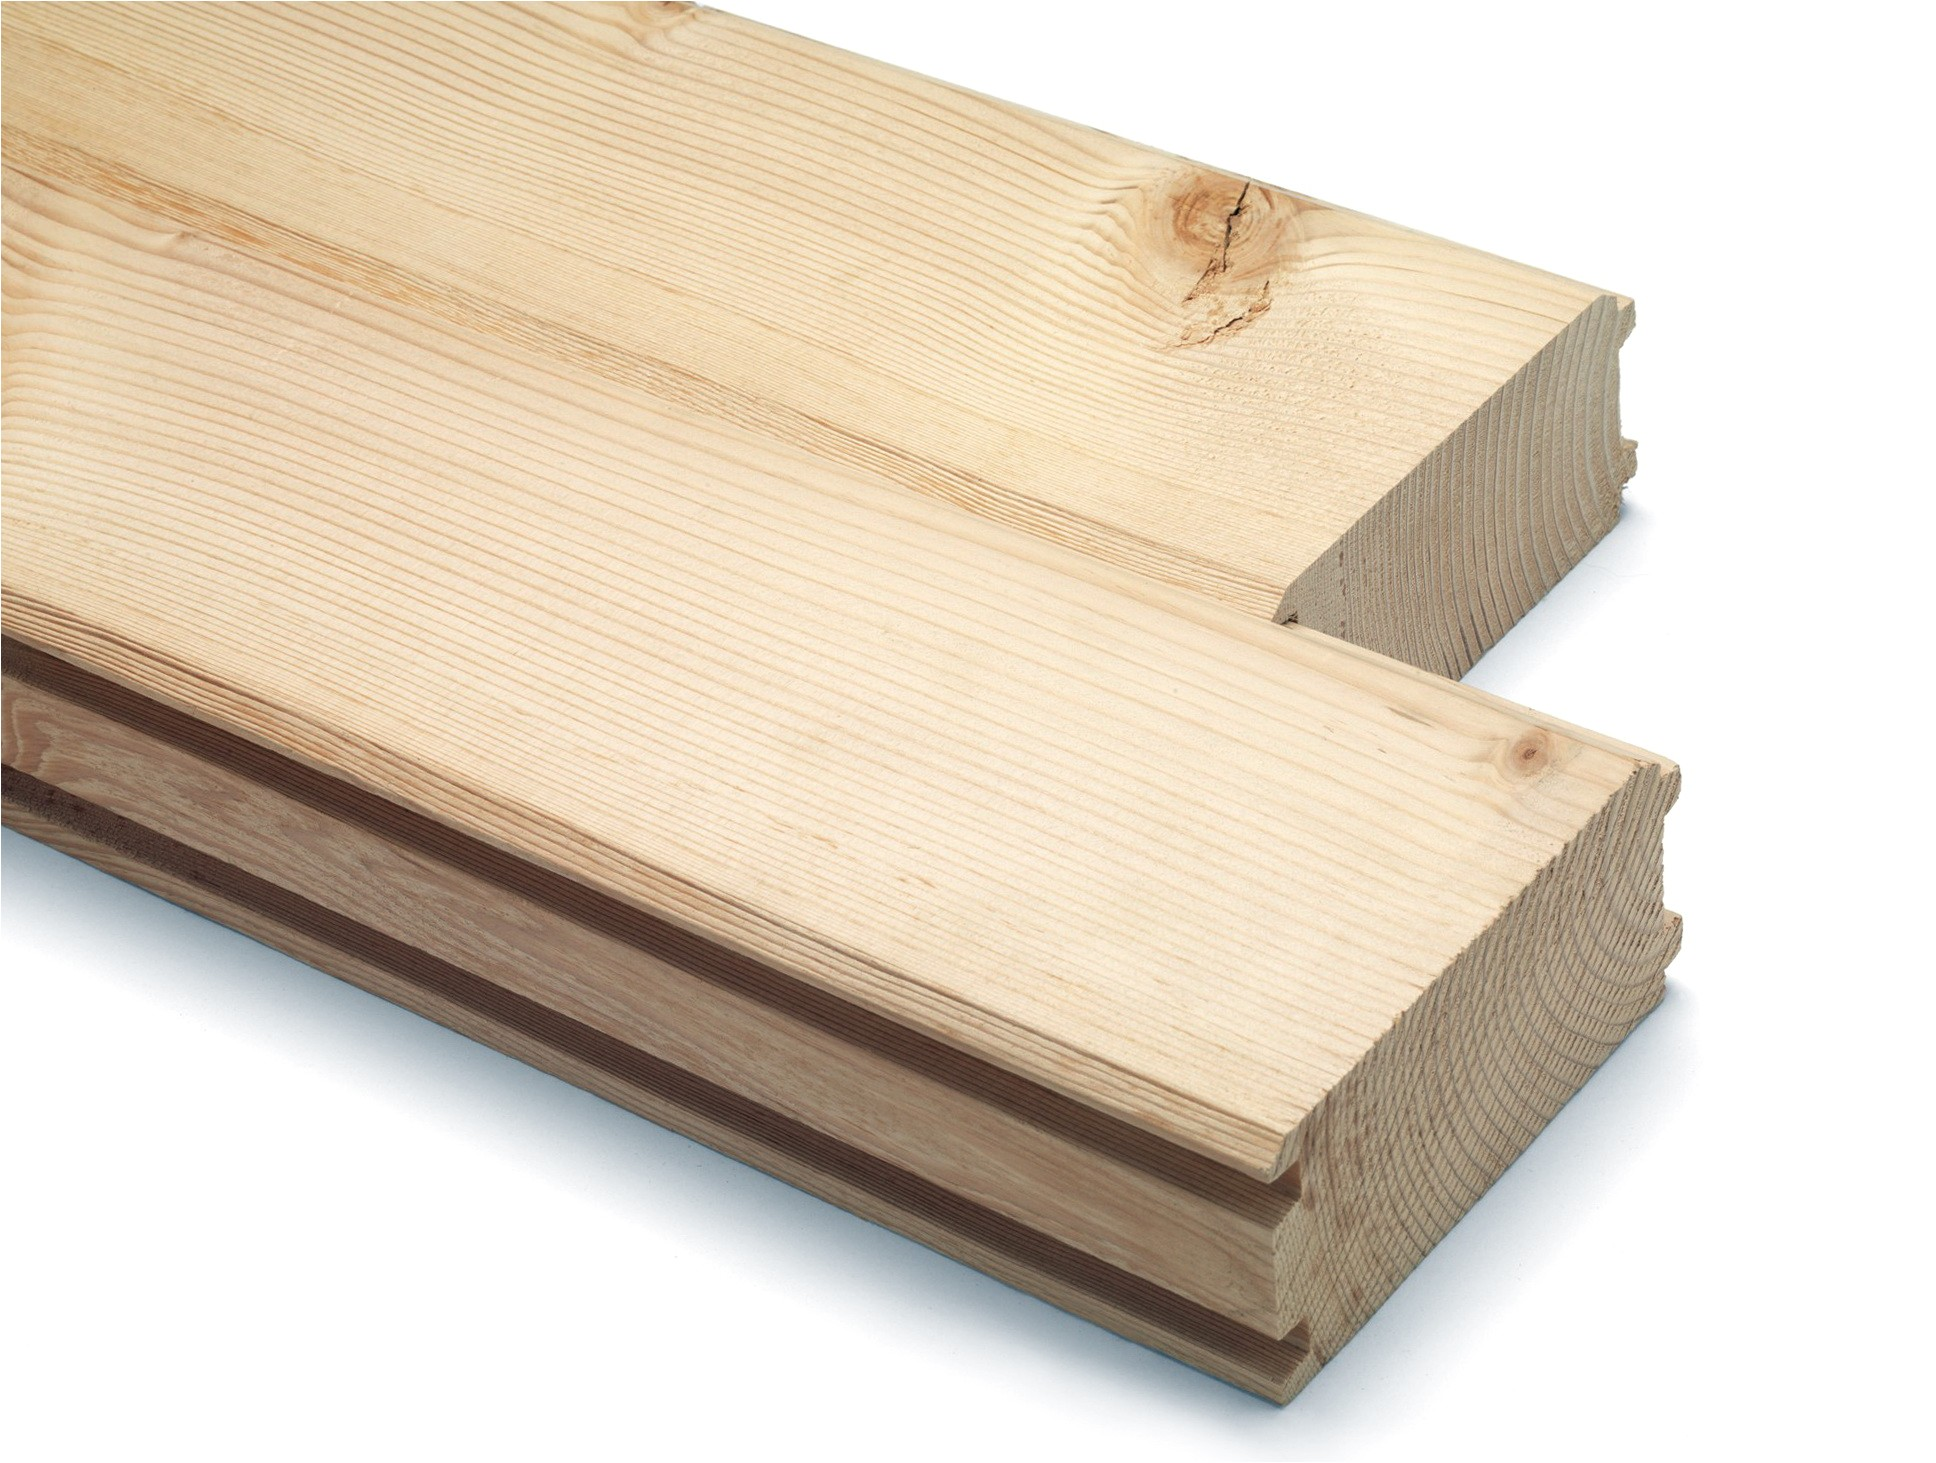 2x6 tongue and groove decking span decks ideas within measurements 1936 x 1463